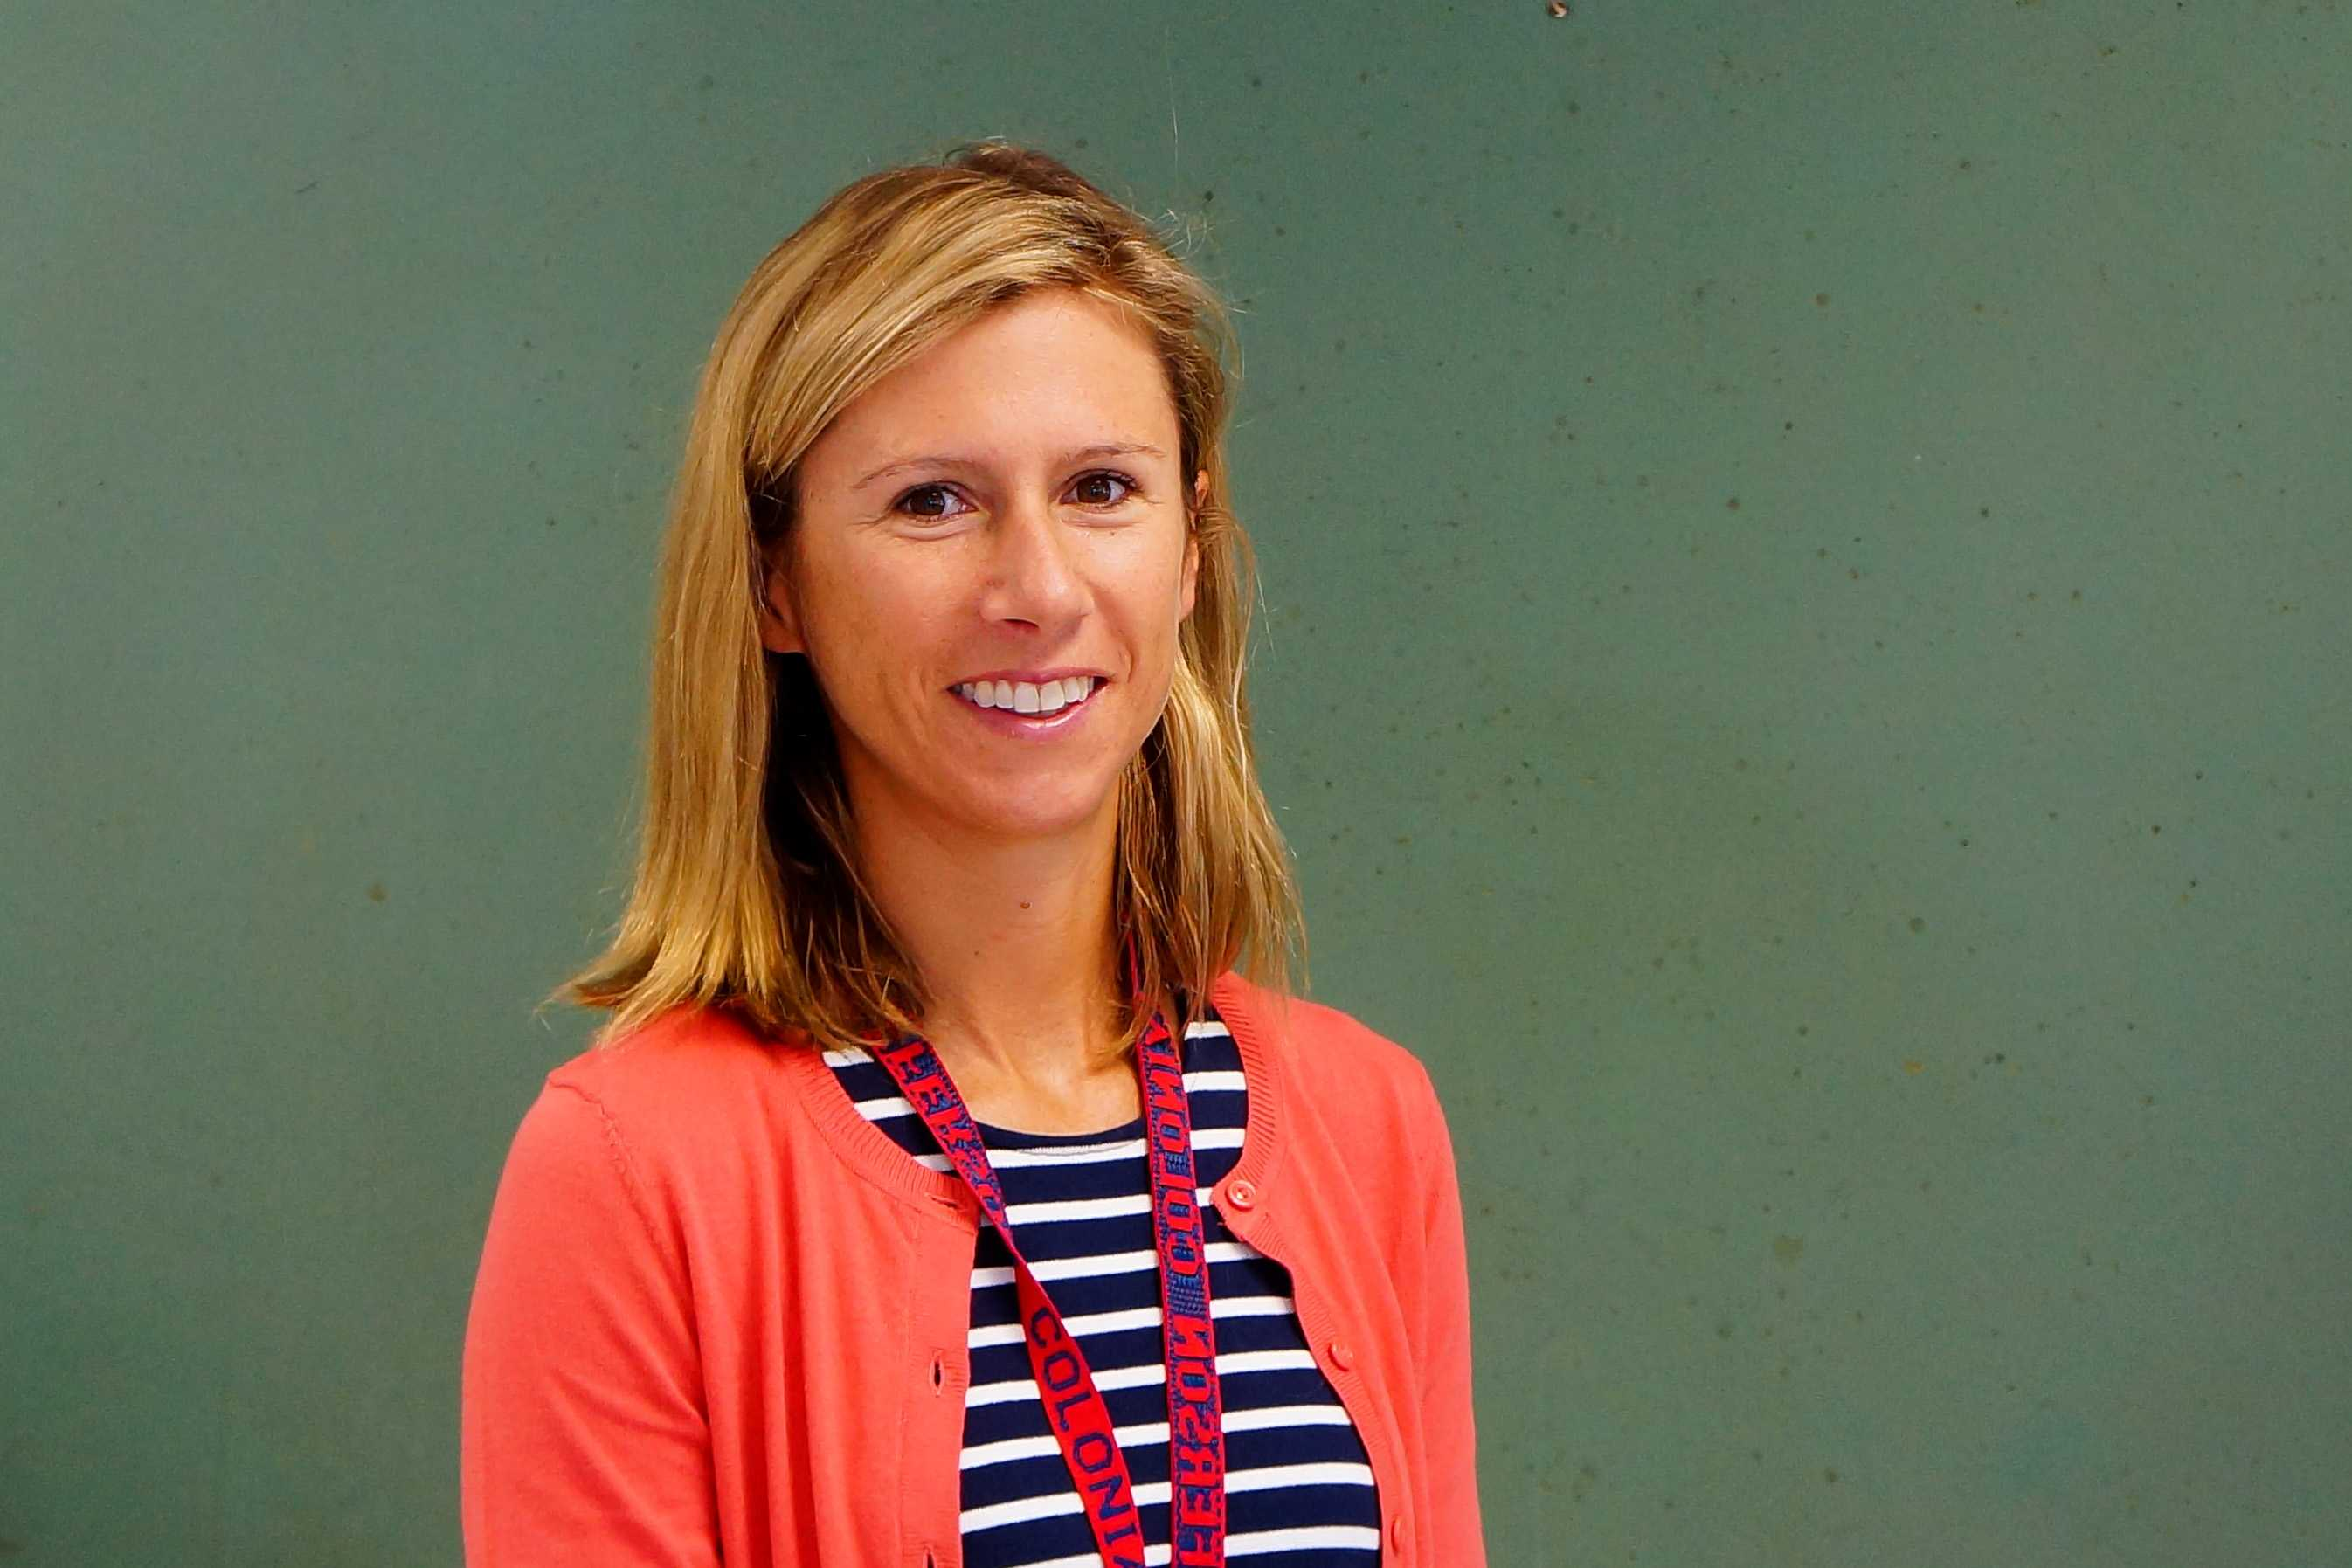 One of Jefferson's new history teachers, Elizabeth Sheptyck looks forward to helping students explore their interests.